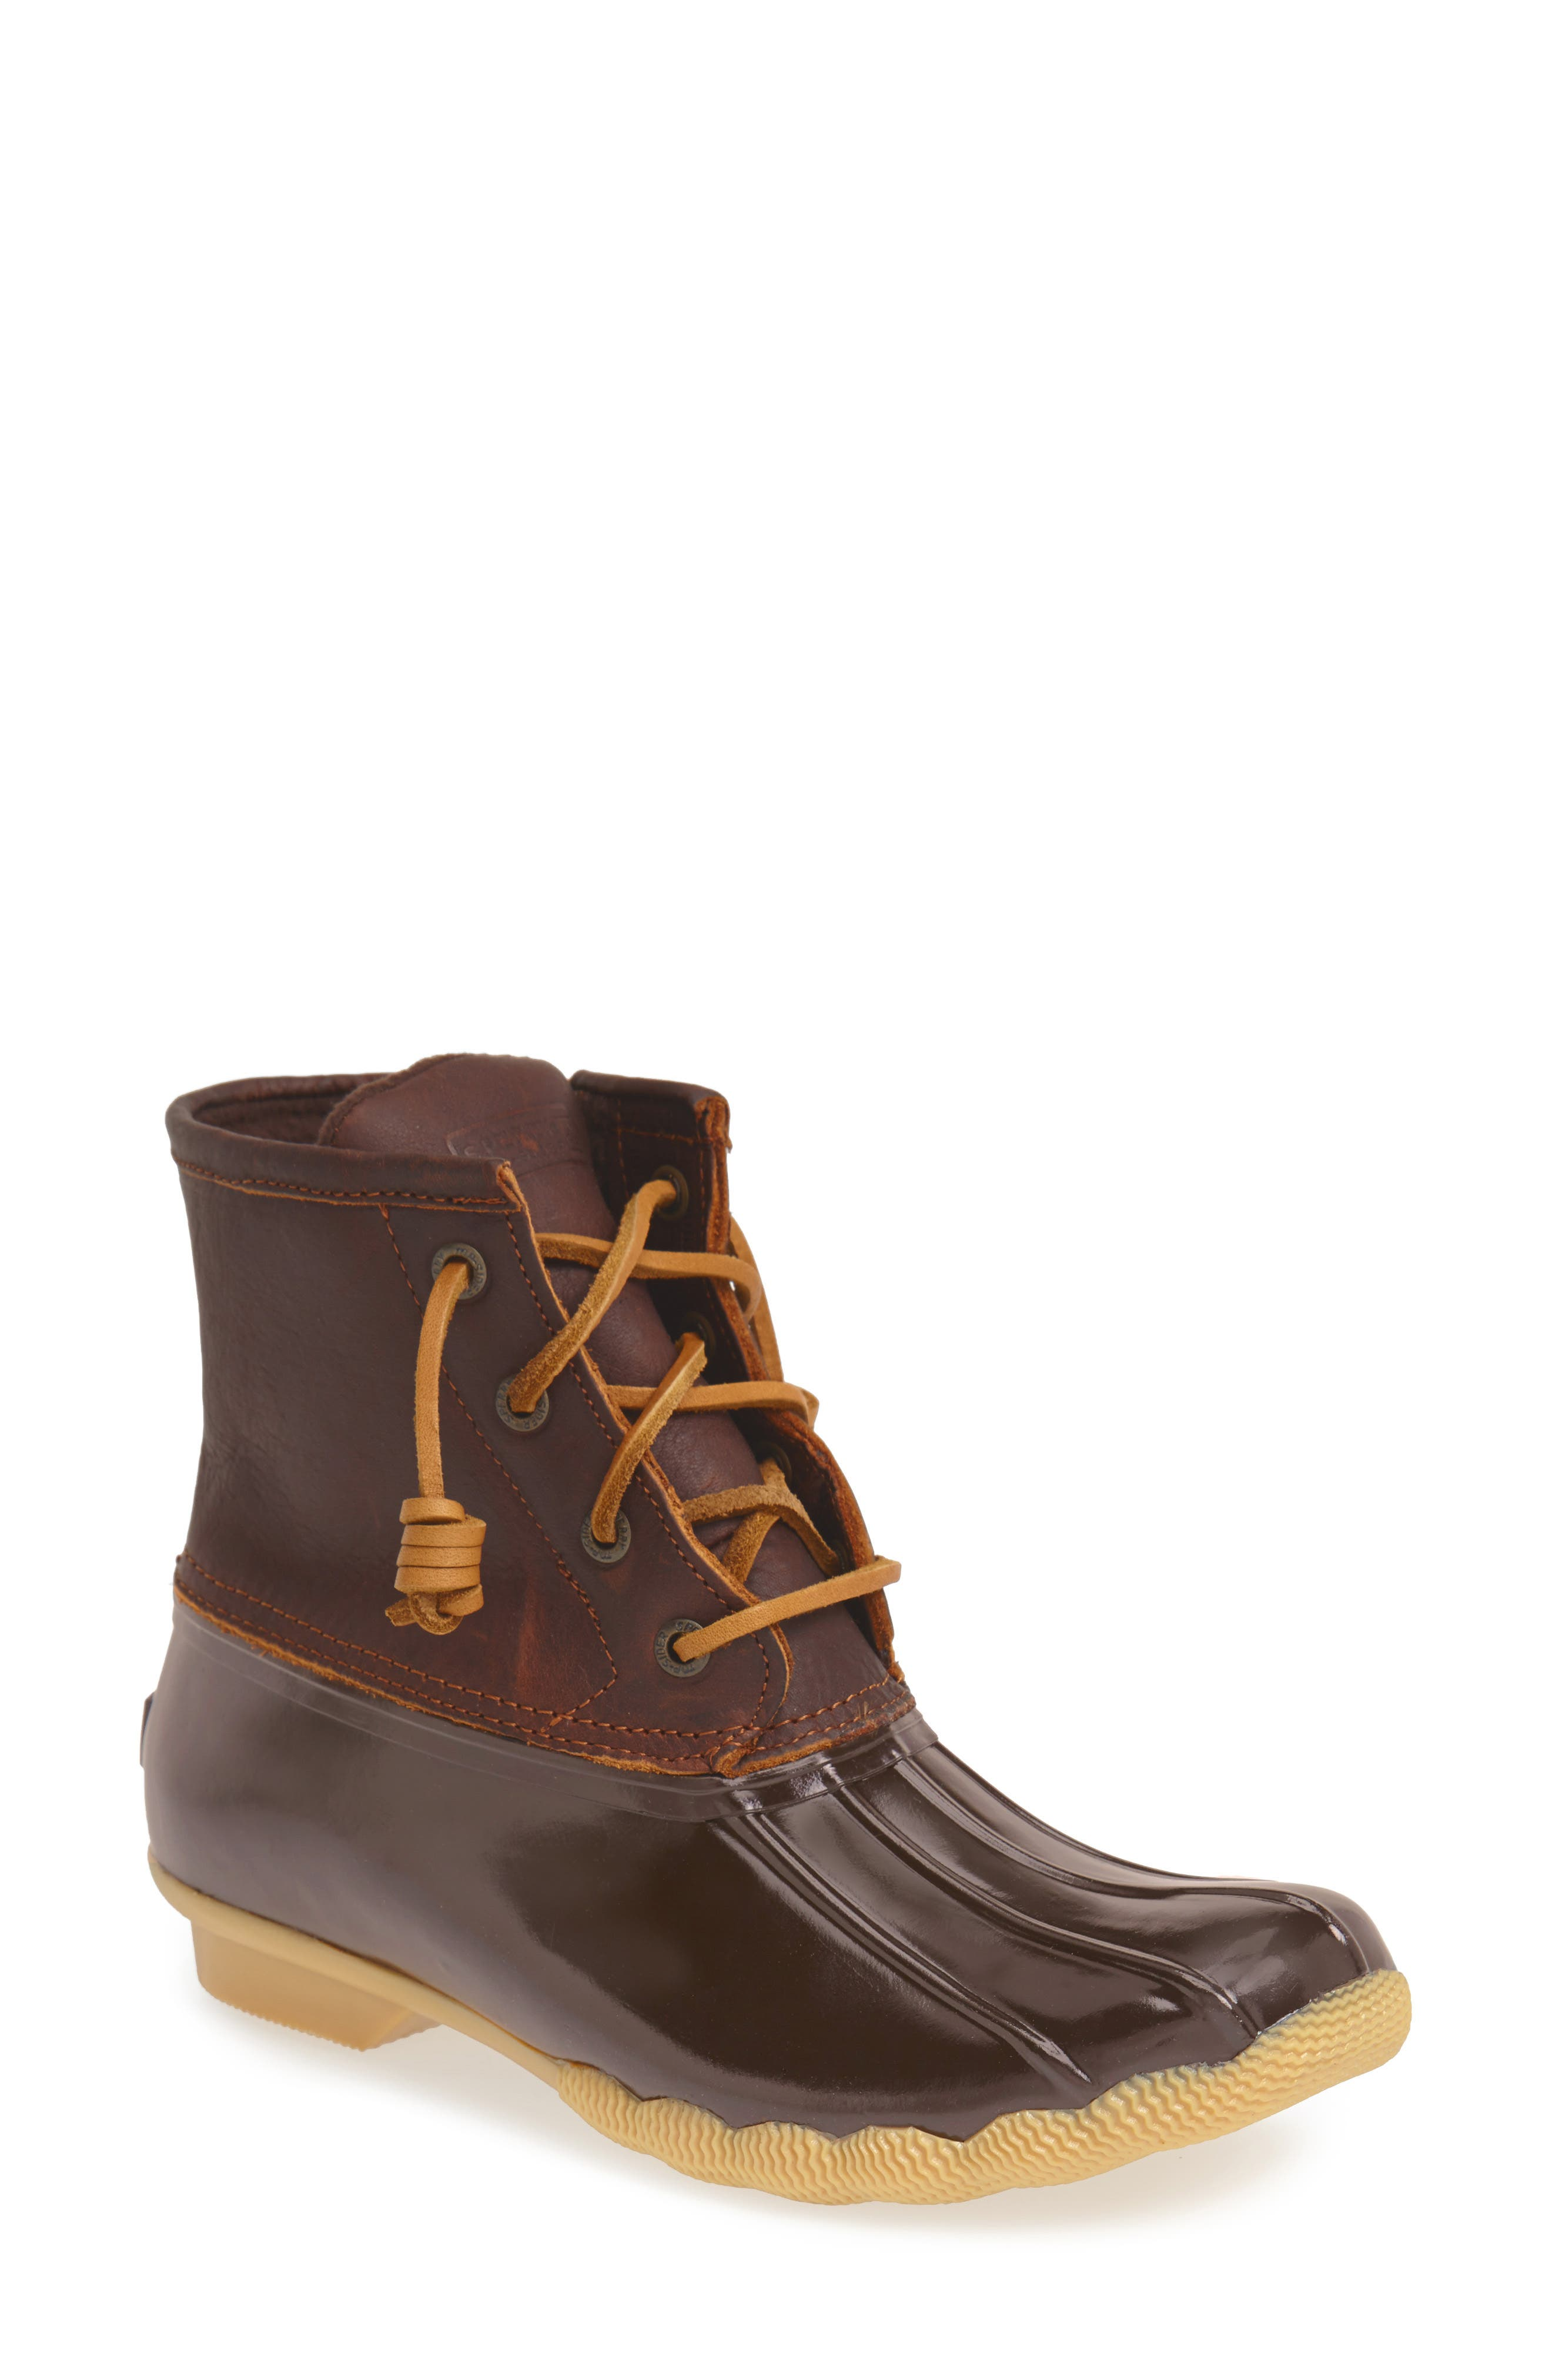 Saltwater Rain Boot,                             Main thumbnail 1, color,                             Tan/ Brown